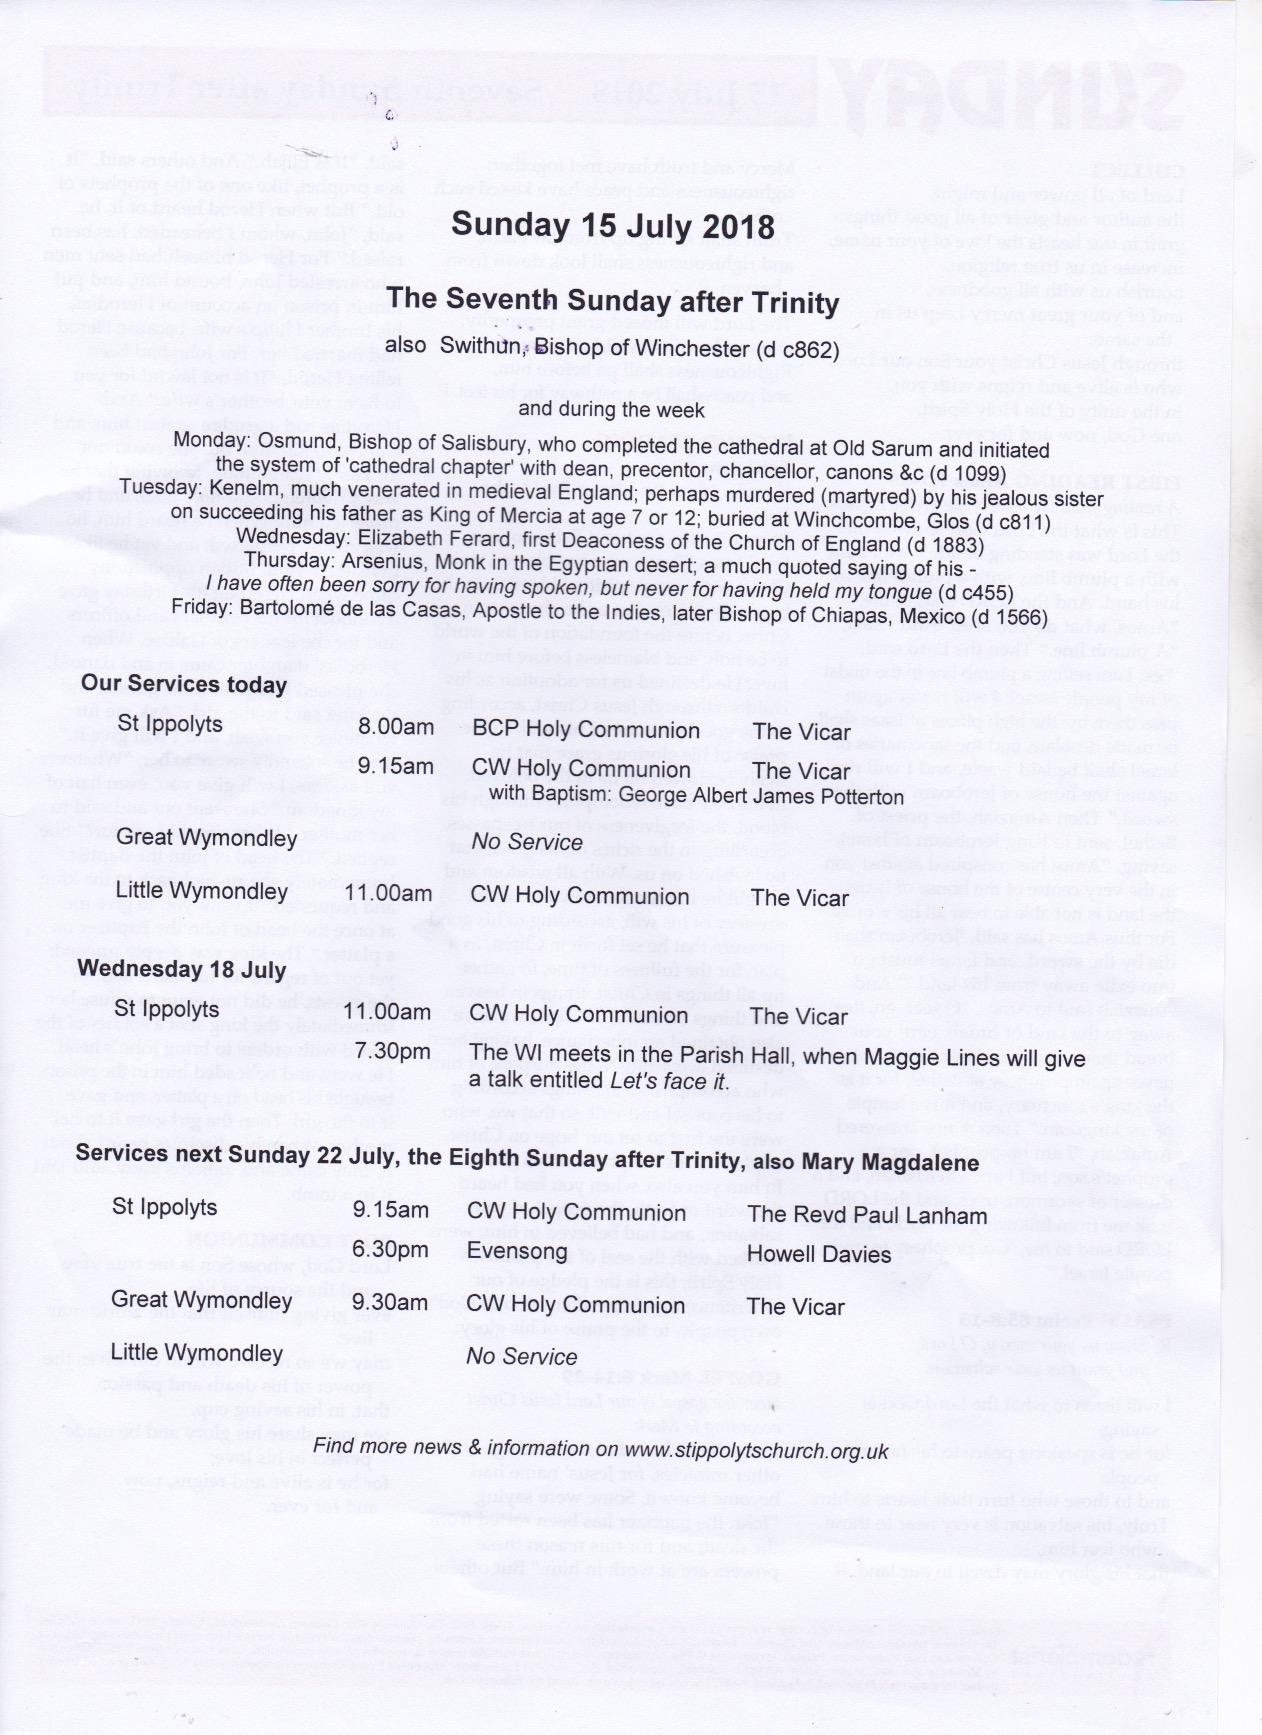 Weekly Pew Sheet, the Seventh Sunday after Trinity.